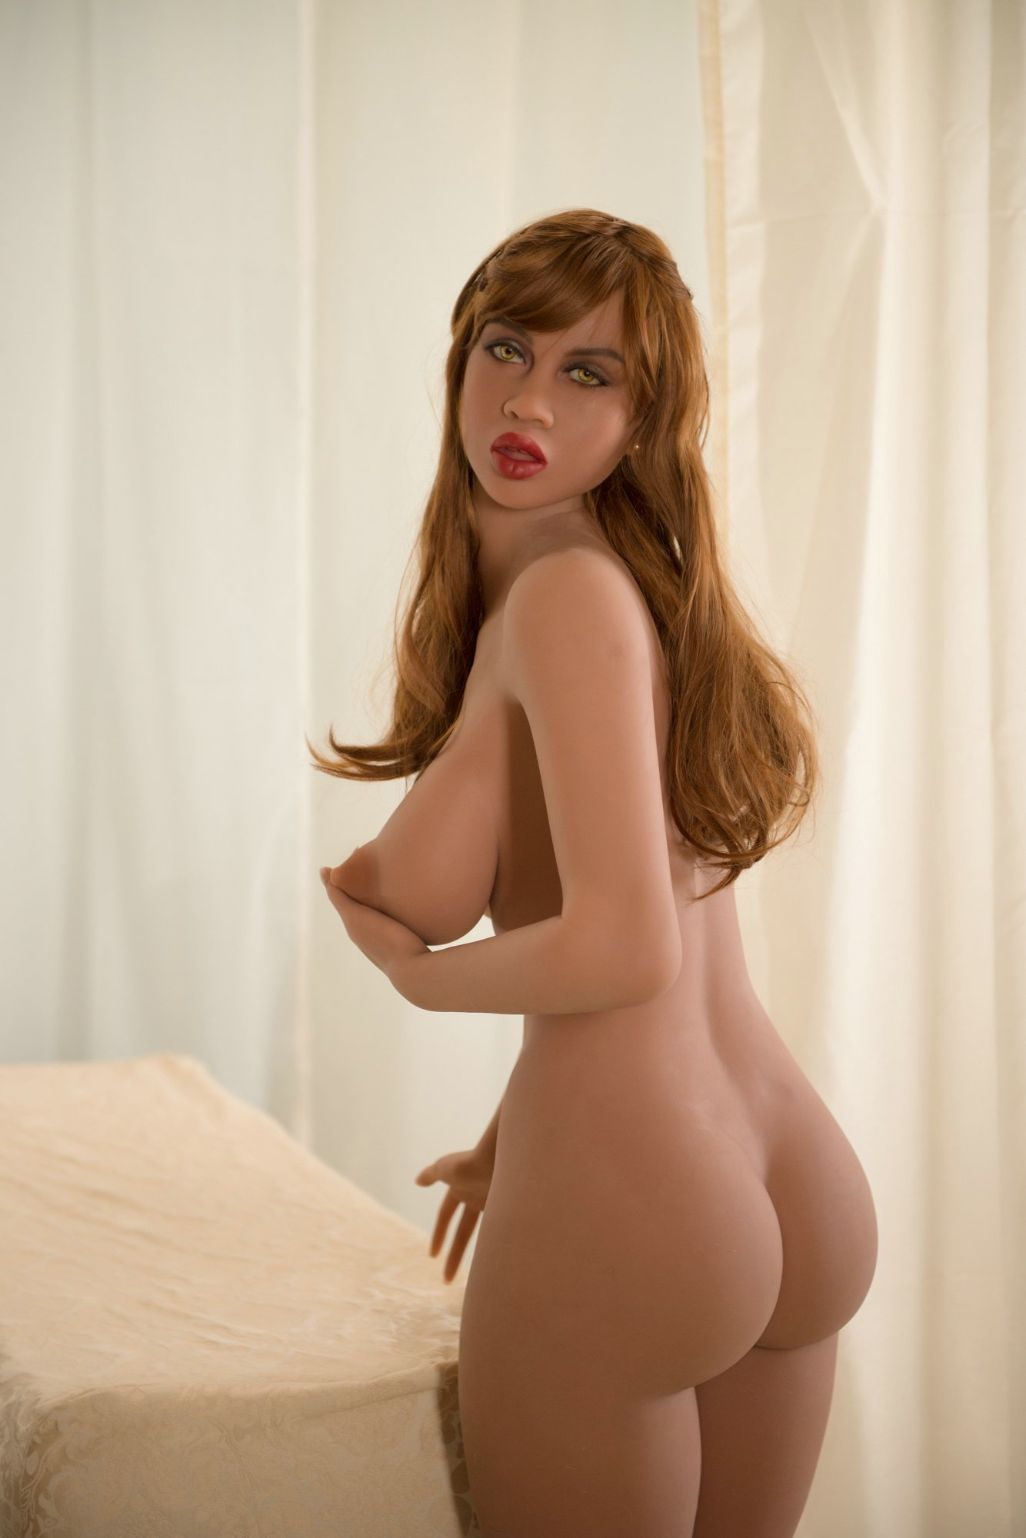 abby 157cm featured big boobs athletic red hair tan skin tpe yl sex doll(3)